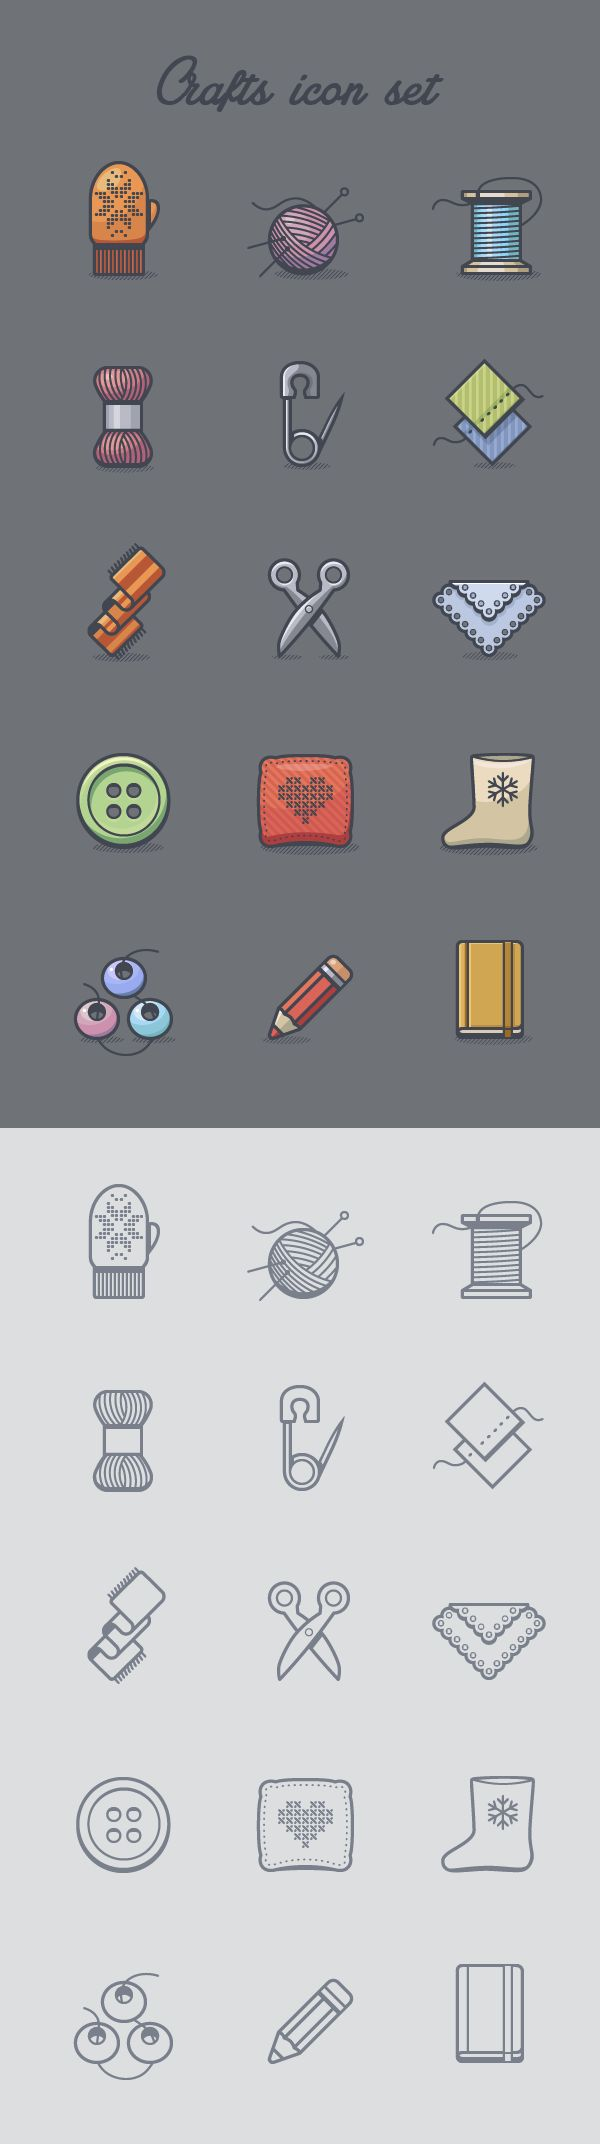 Woah this icon is simply superb. I like this !! Crafts icon set on Behance